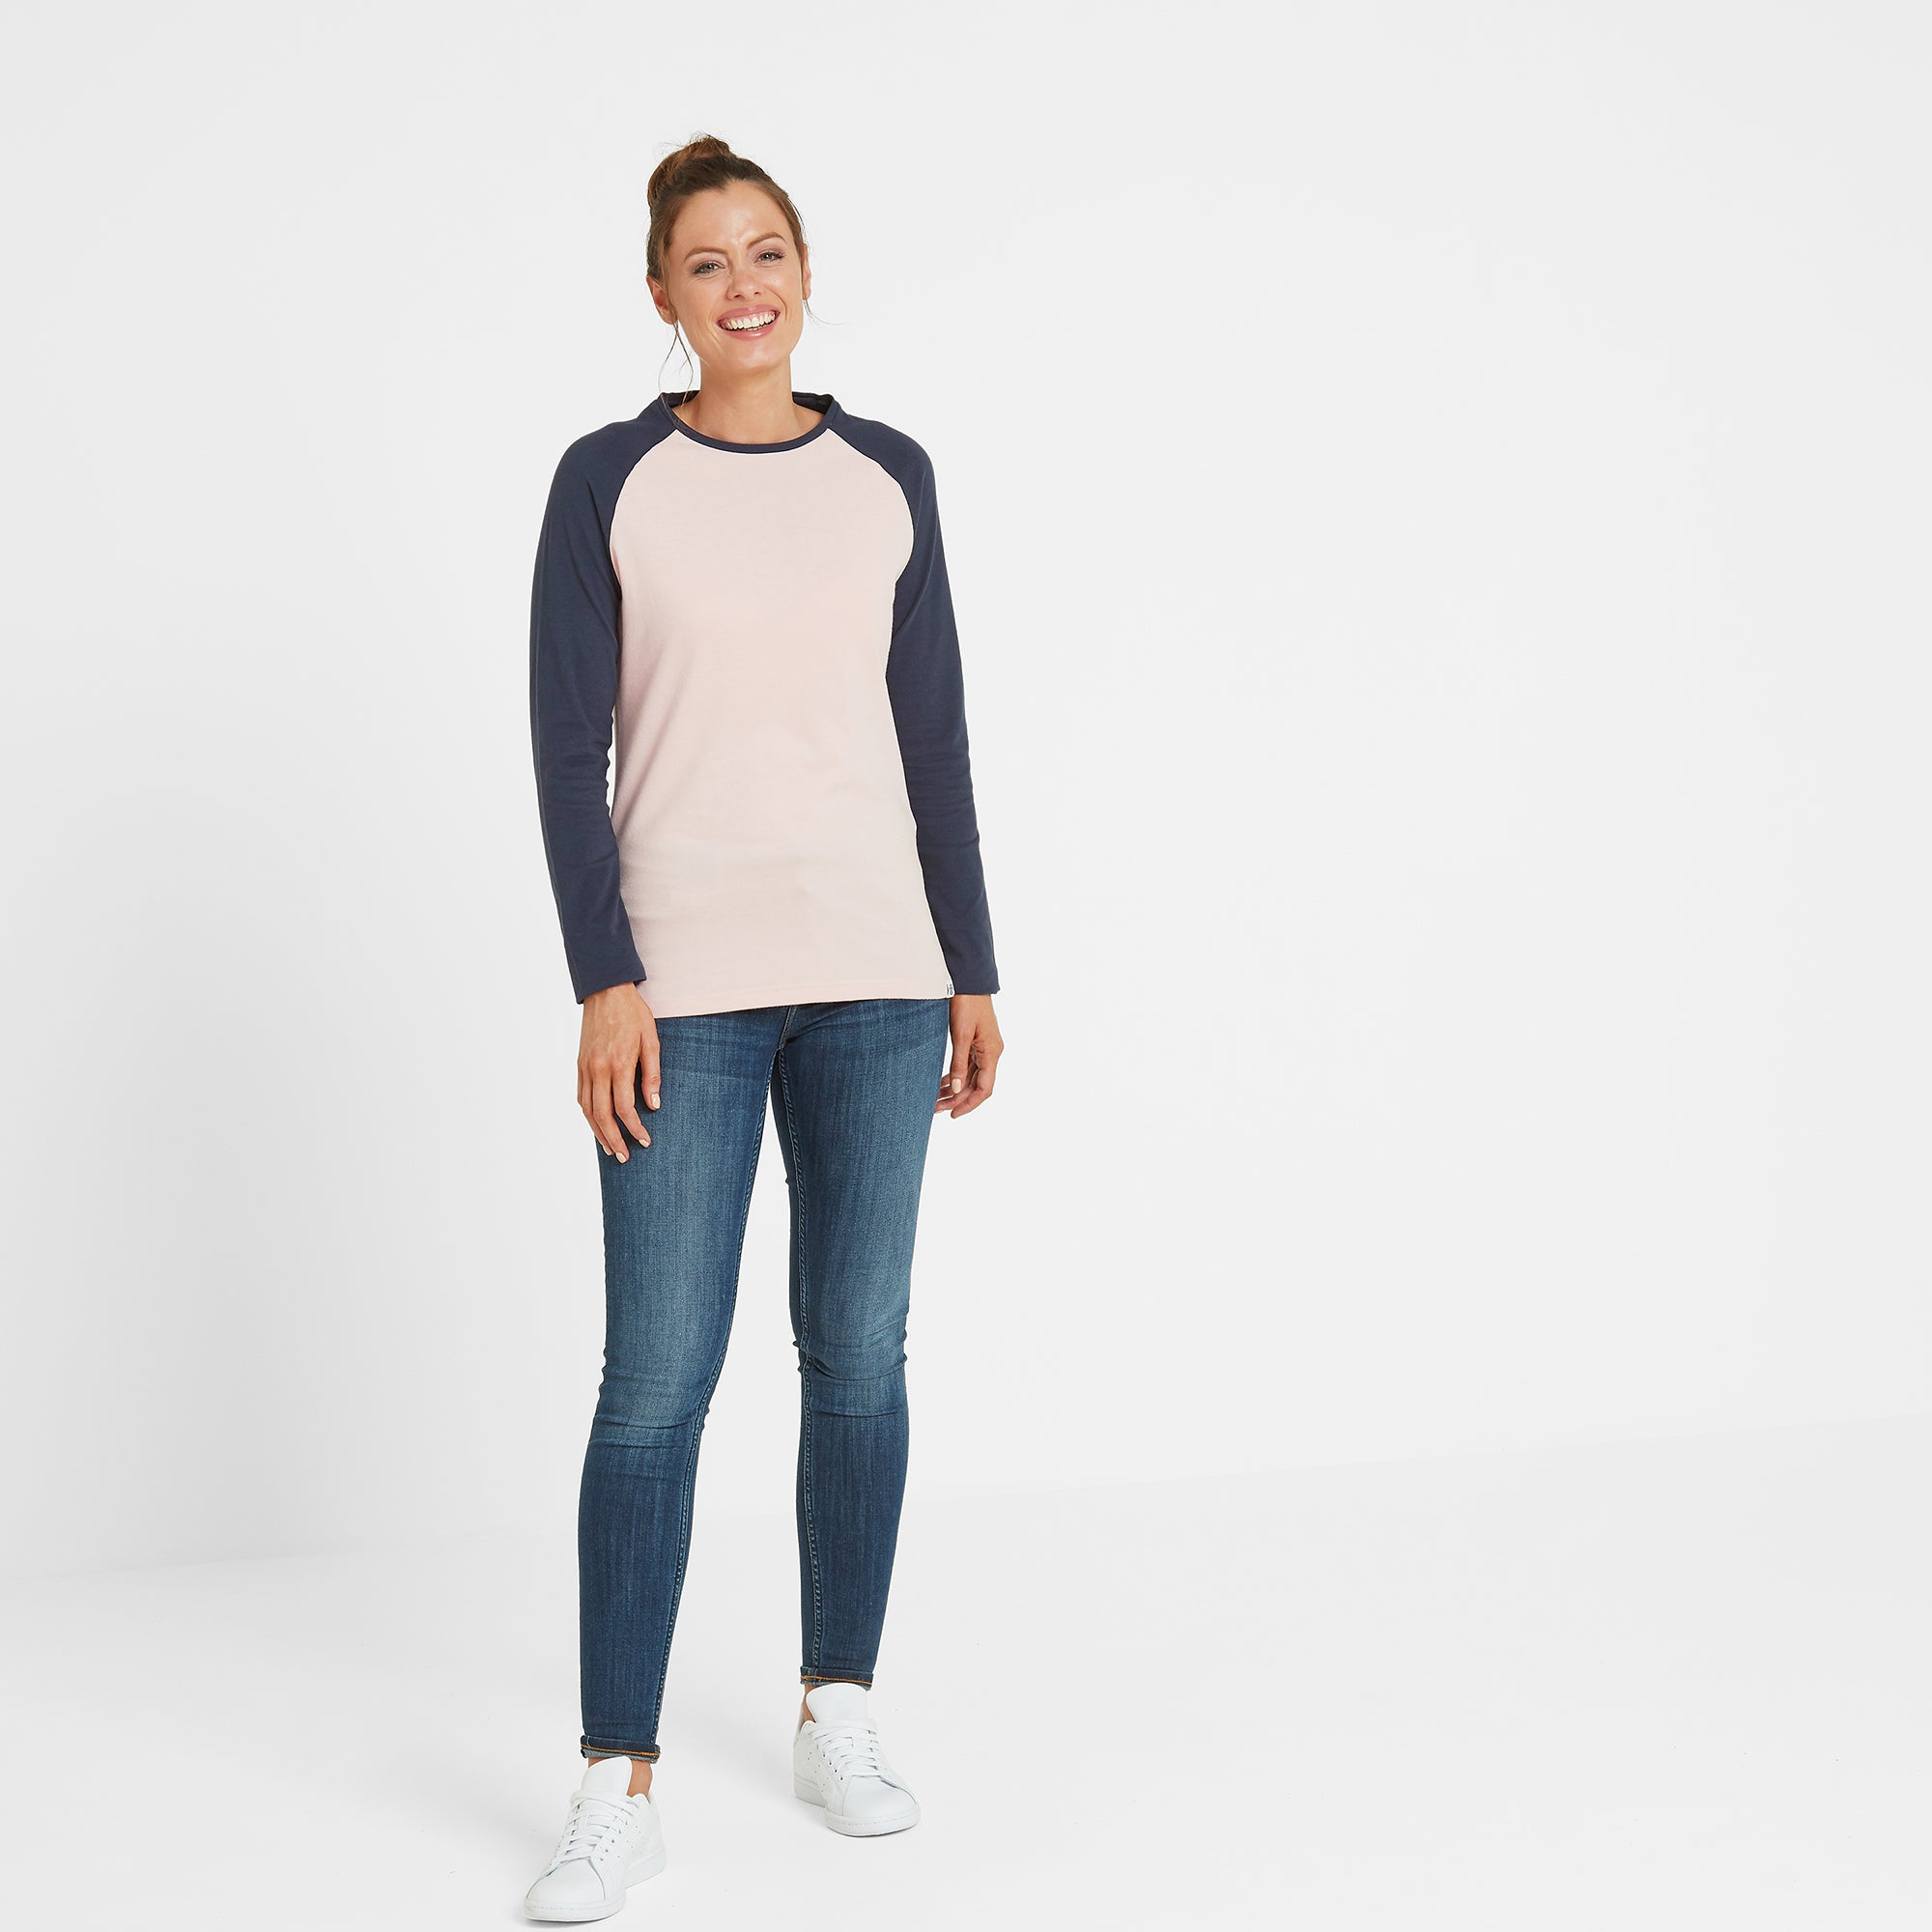 Thirn Womens Long Sleeve Raglan T-Shirt - Rose Marl/Dark Indigo